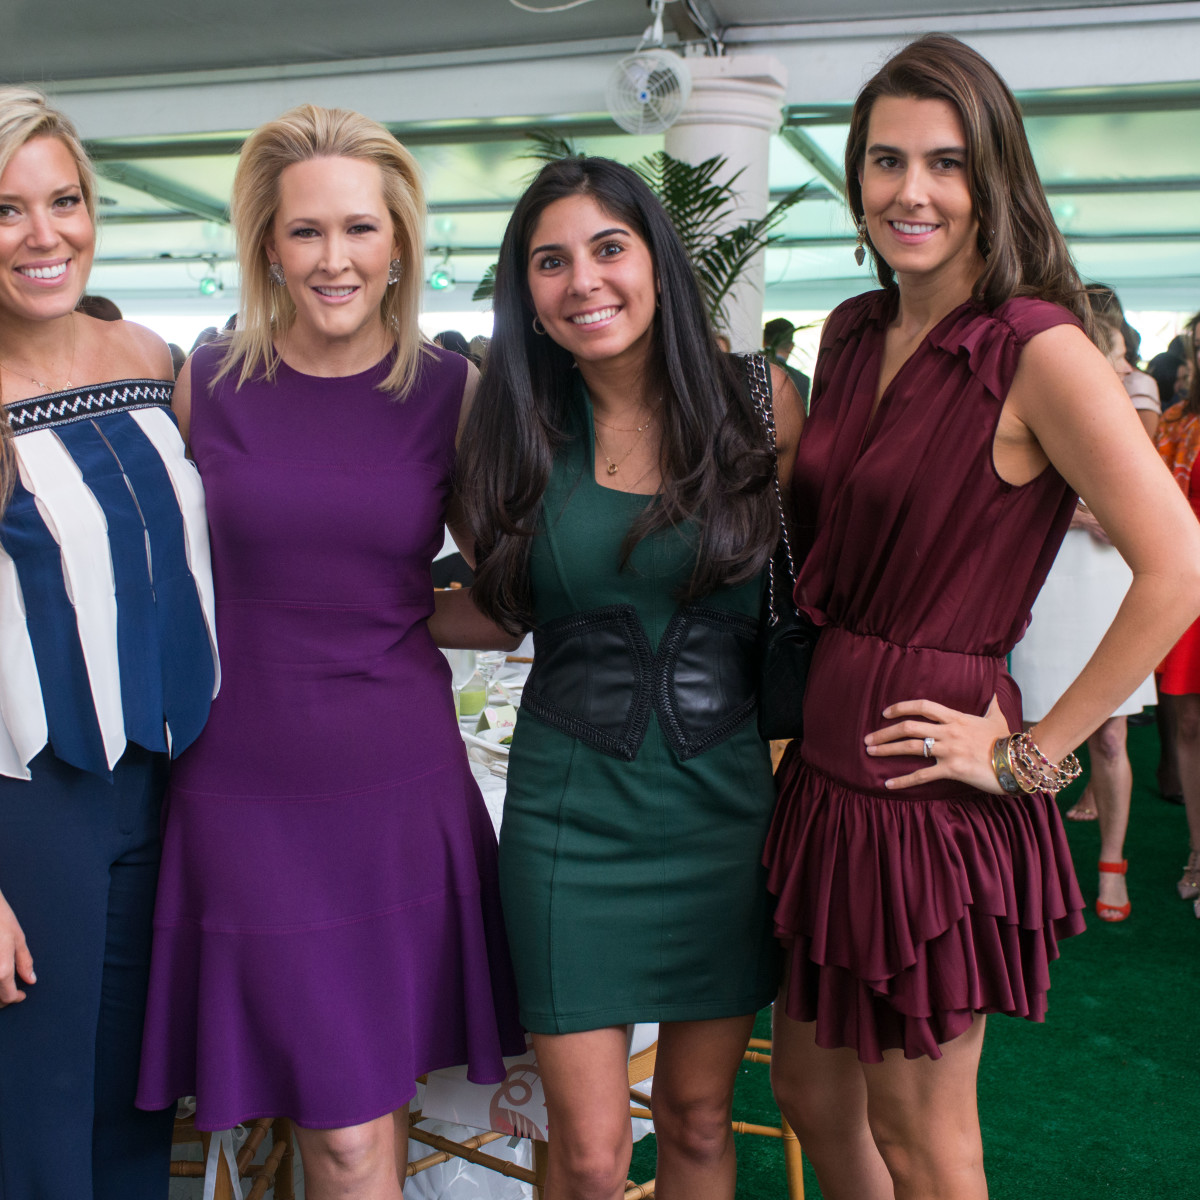 Bayou Bend luncheon, April 2016, Holly Alvis, Kelly Silvers, Mona Sabzevari, Kathryn Swain